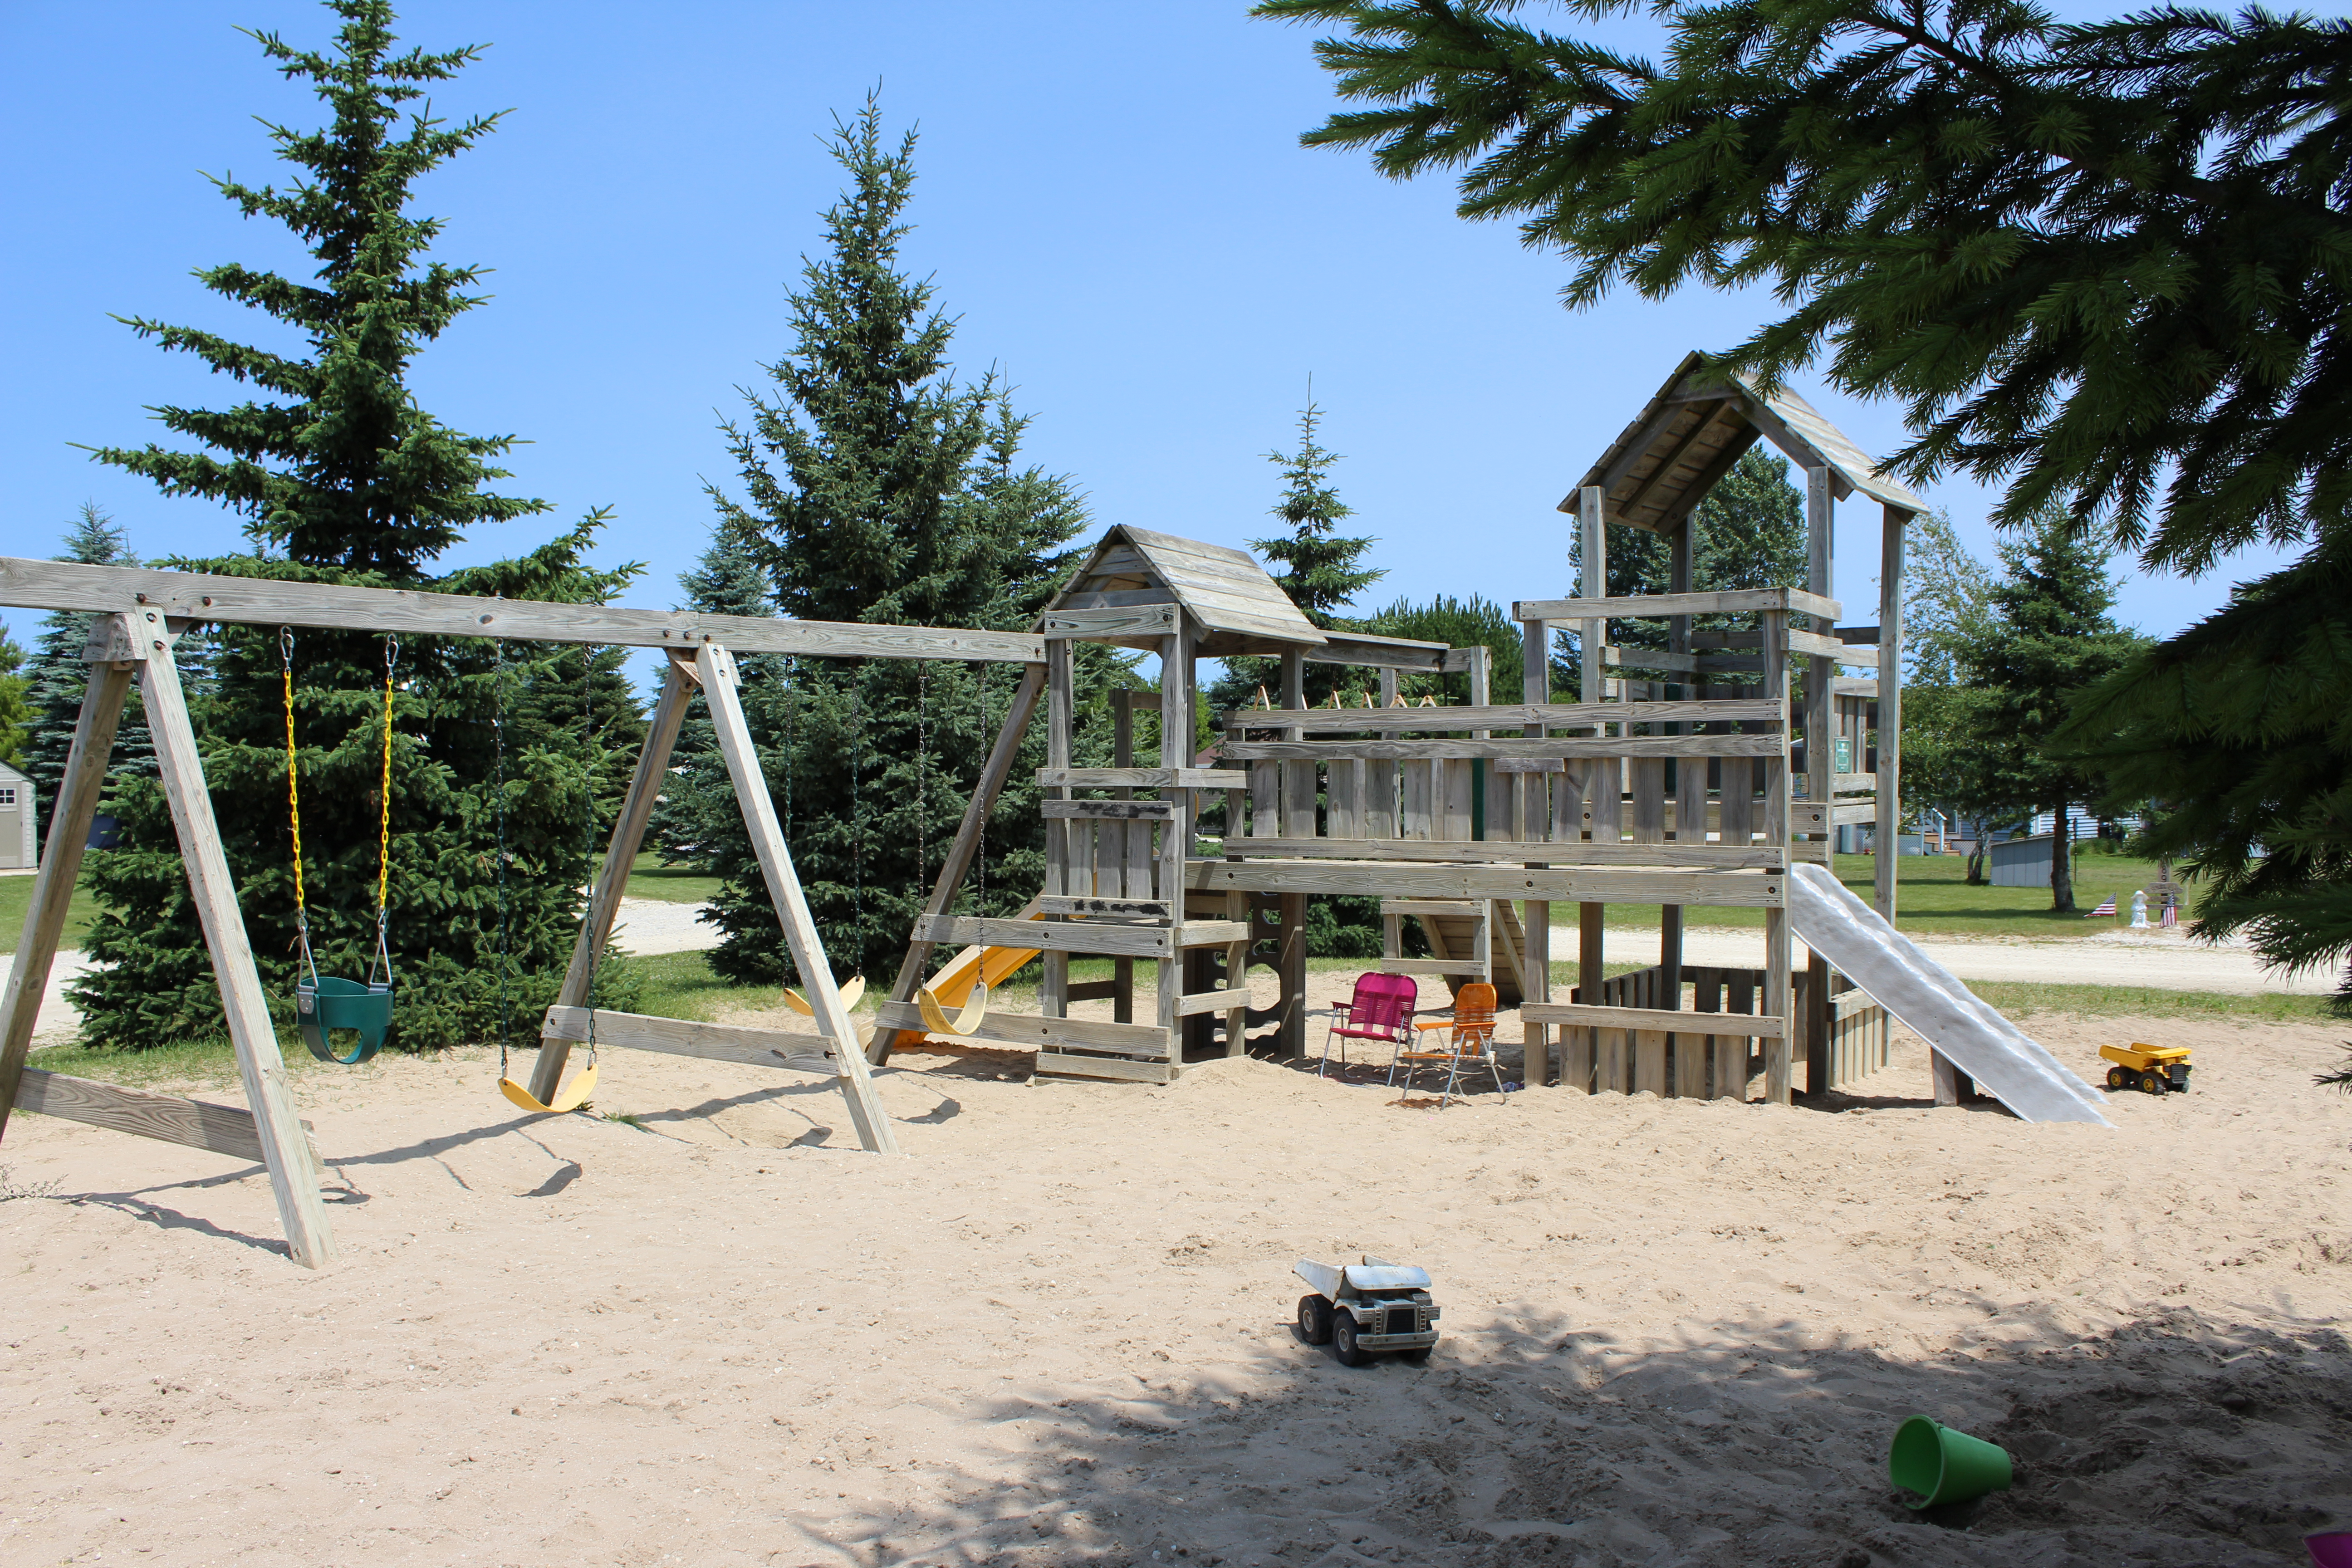 Playground north